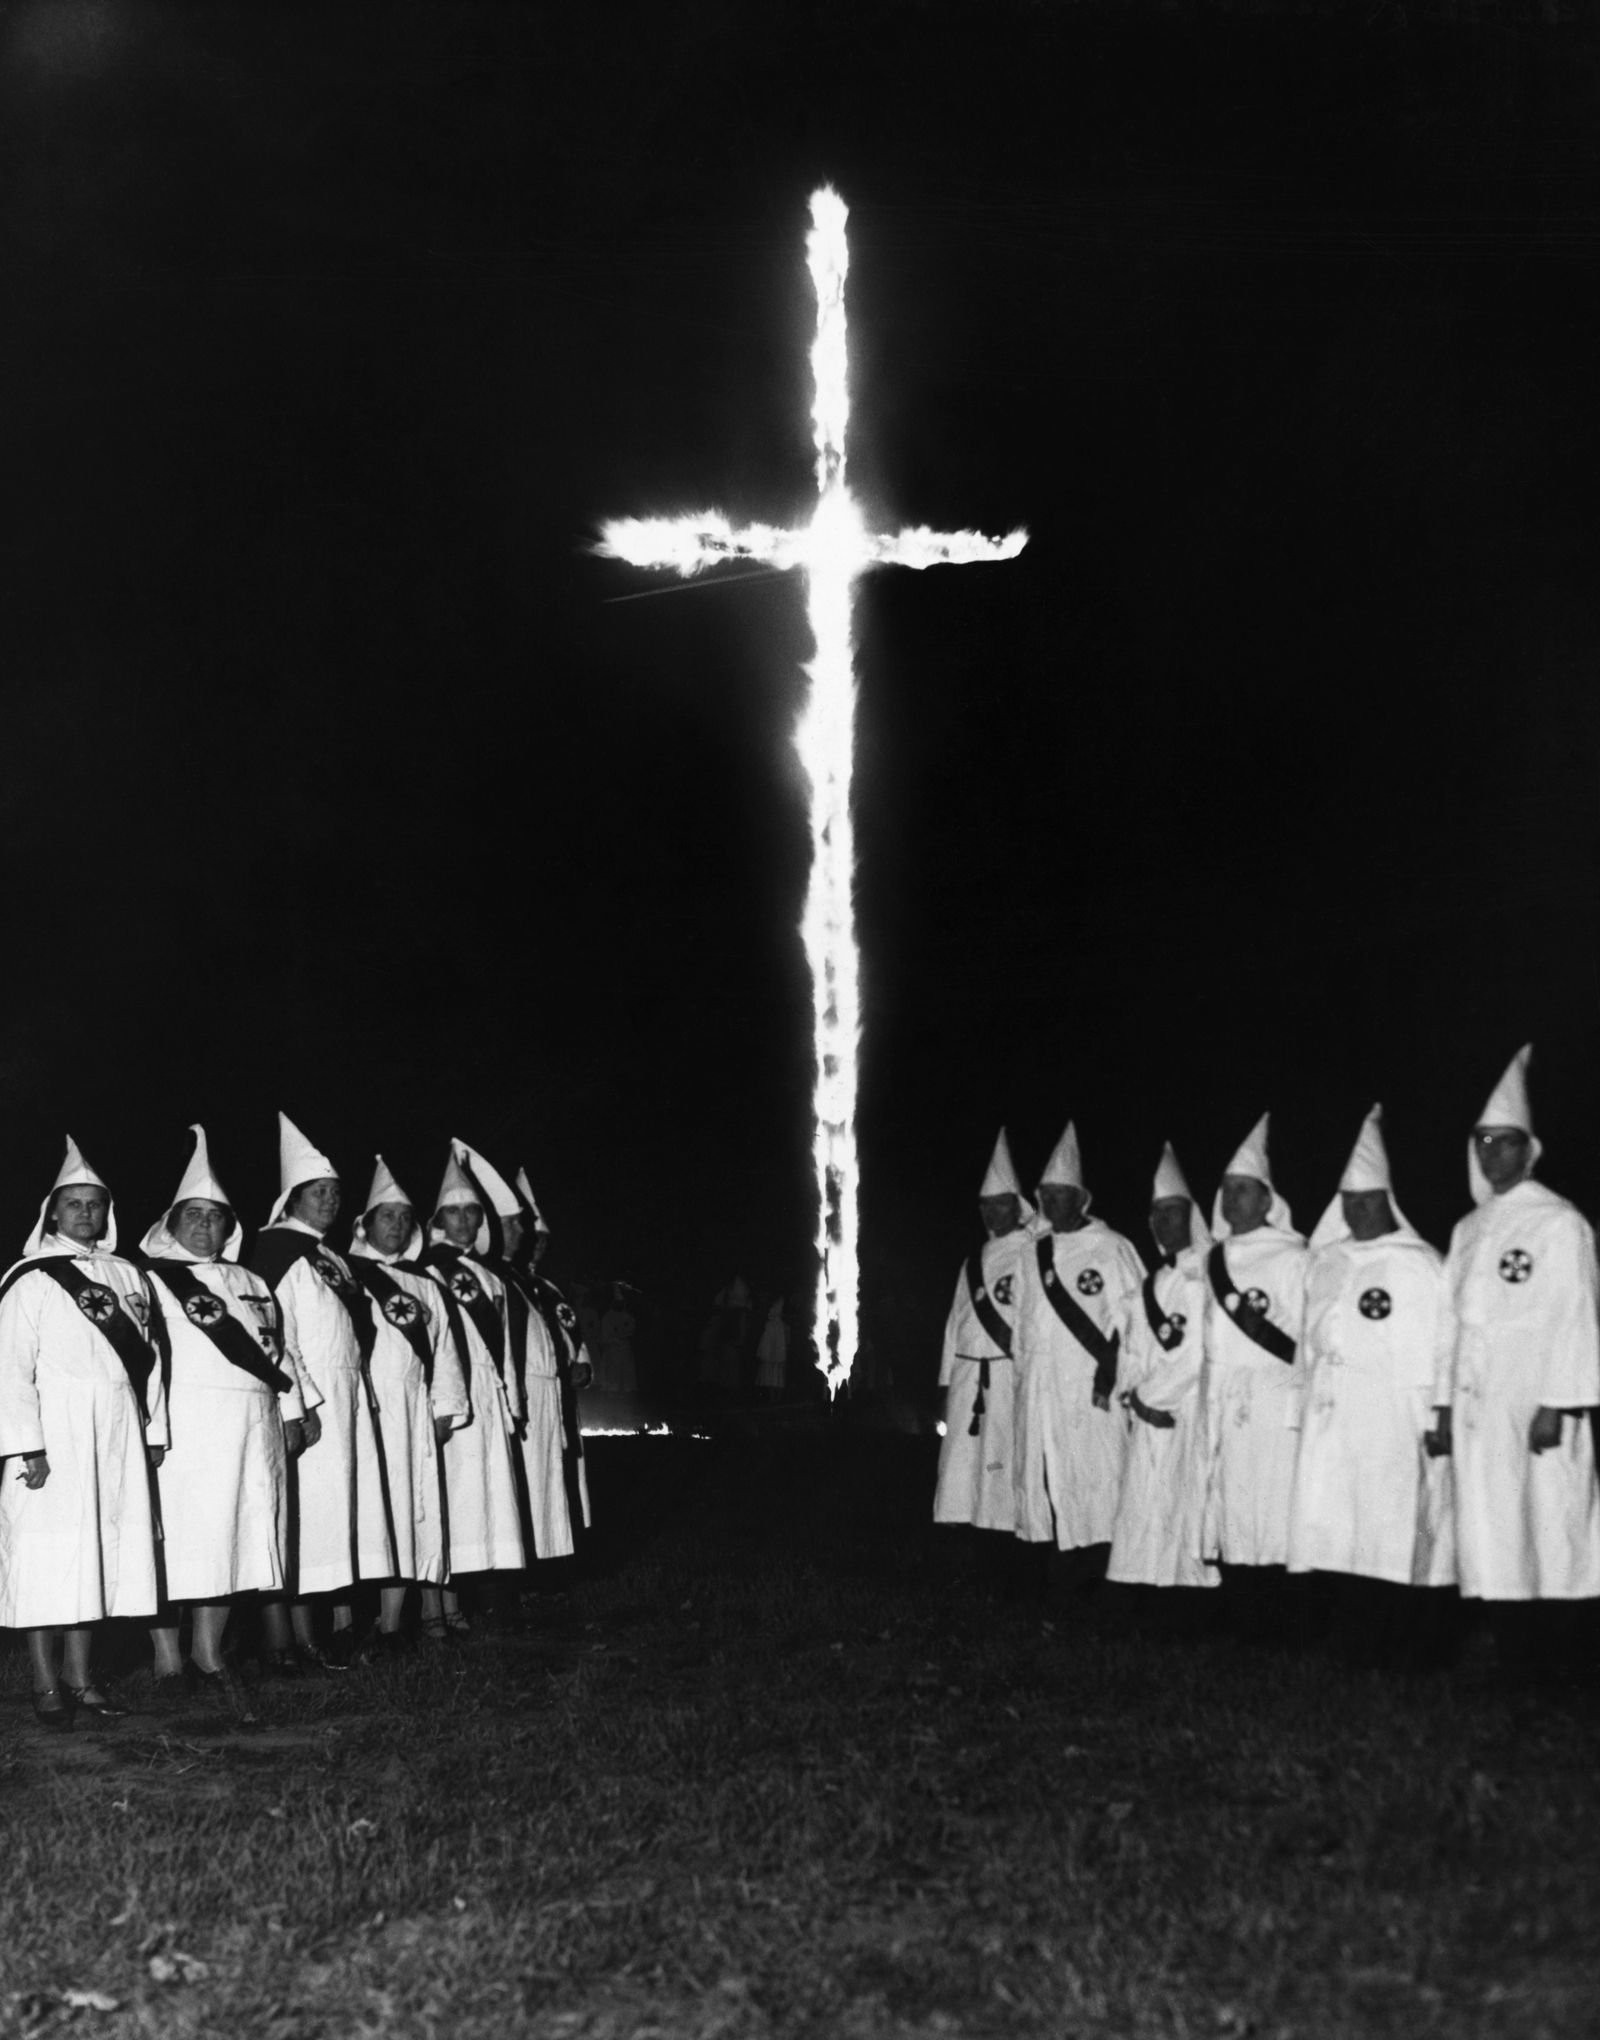 KKK und die Frauen - A Group of Klan Men and Women Burning Cross